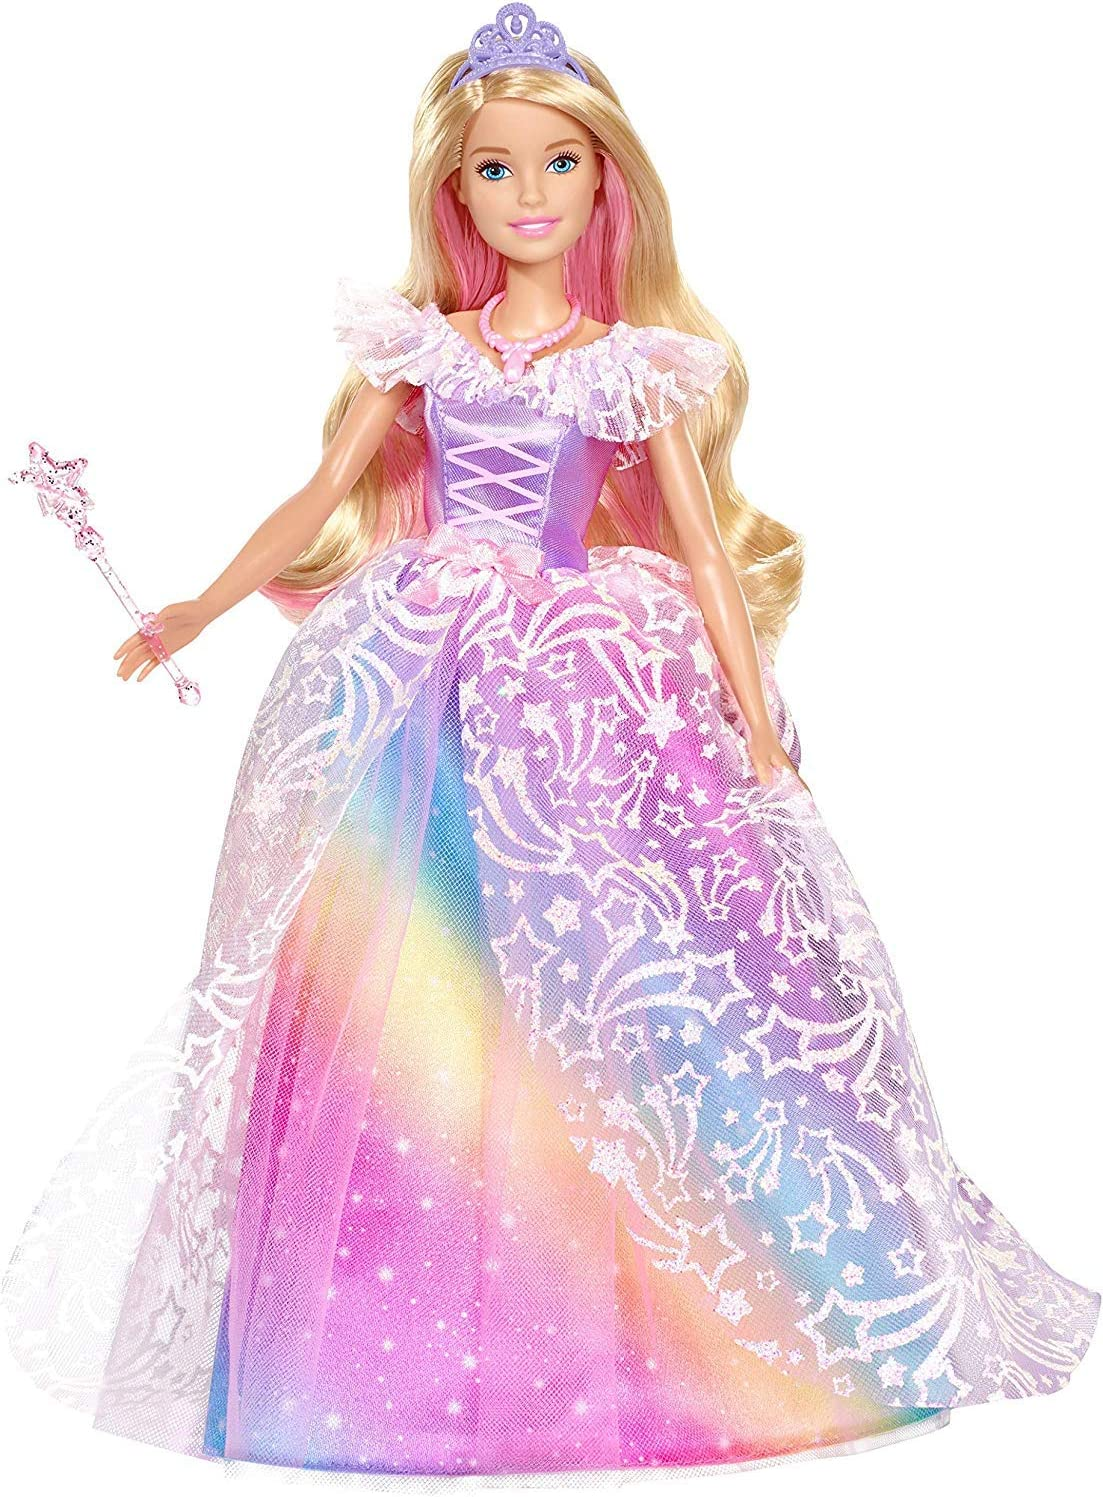 BRB SUPERPRINCESA DREAMTOPIA